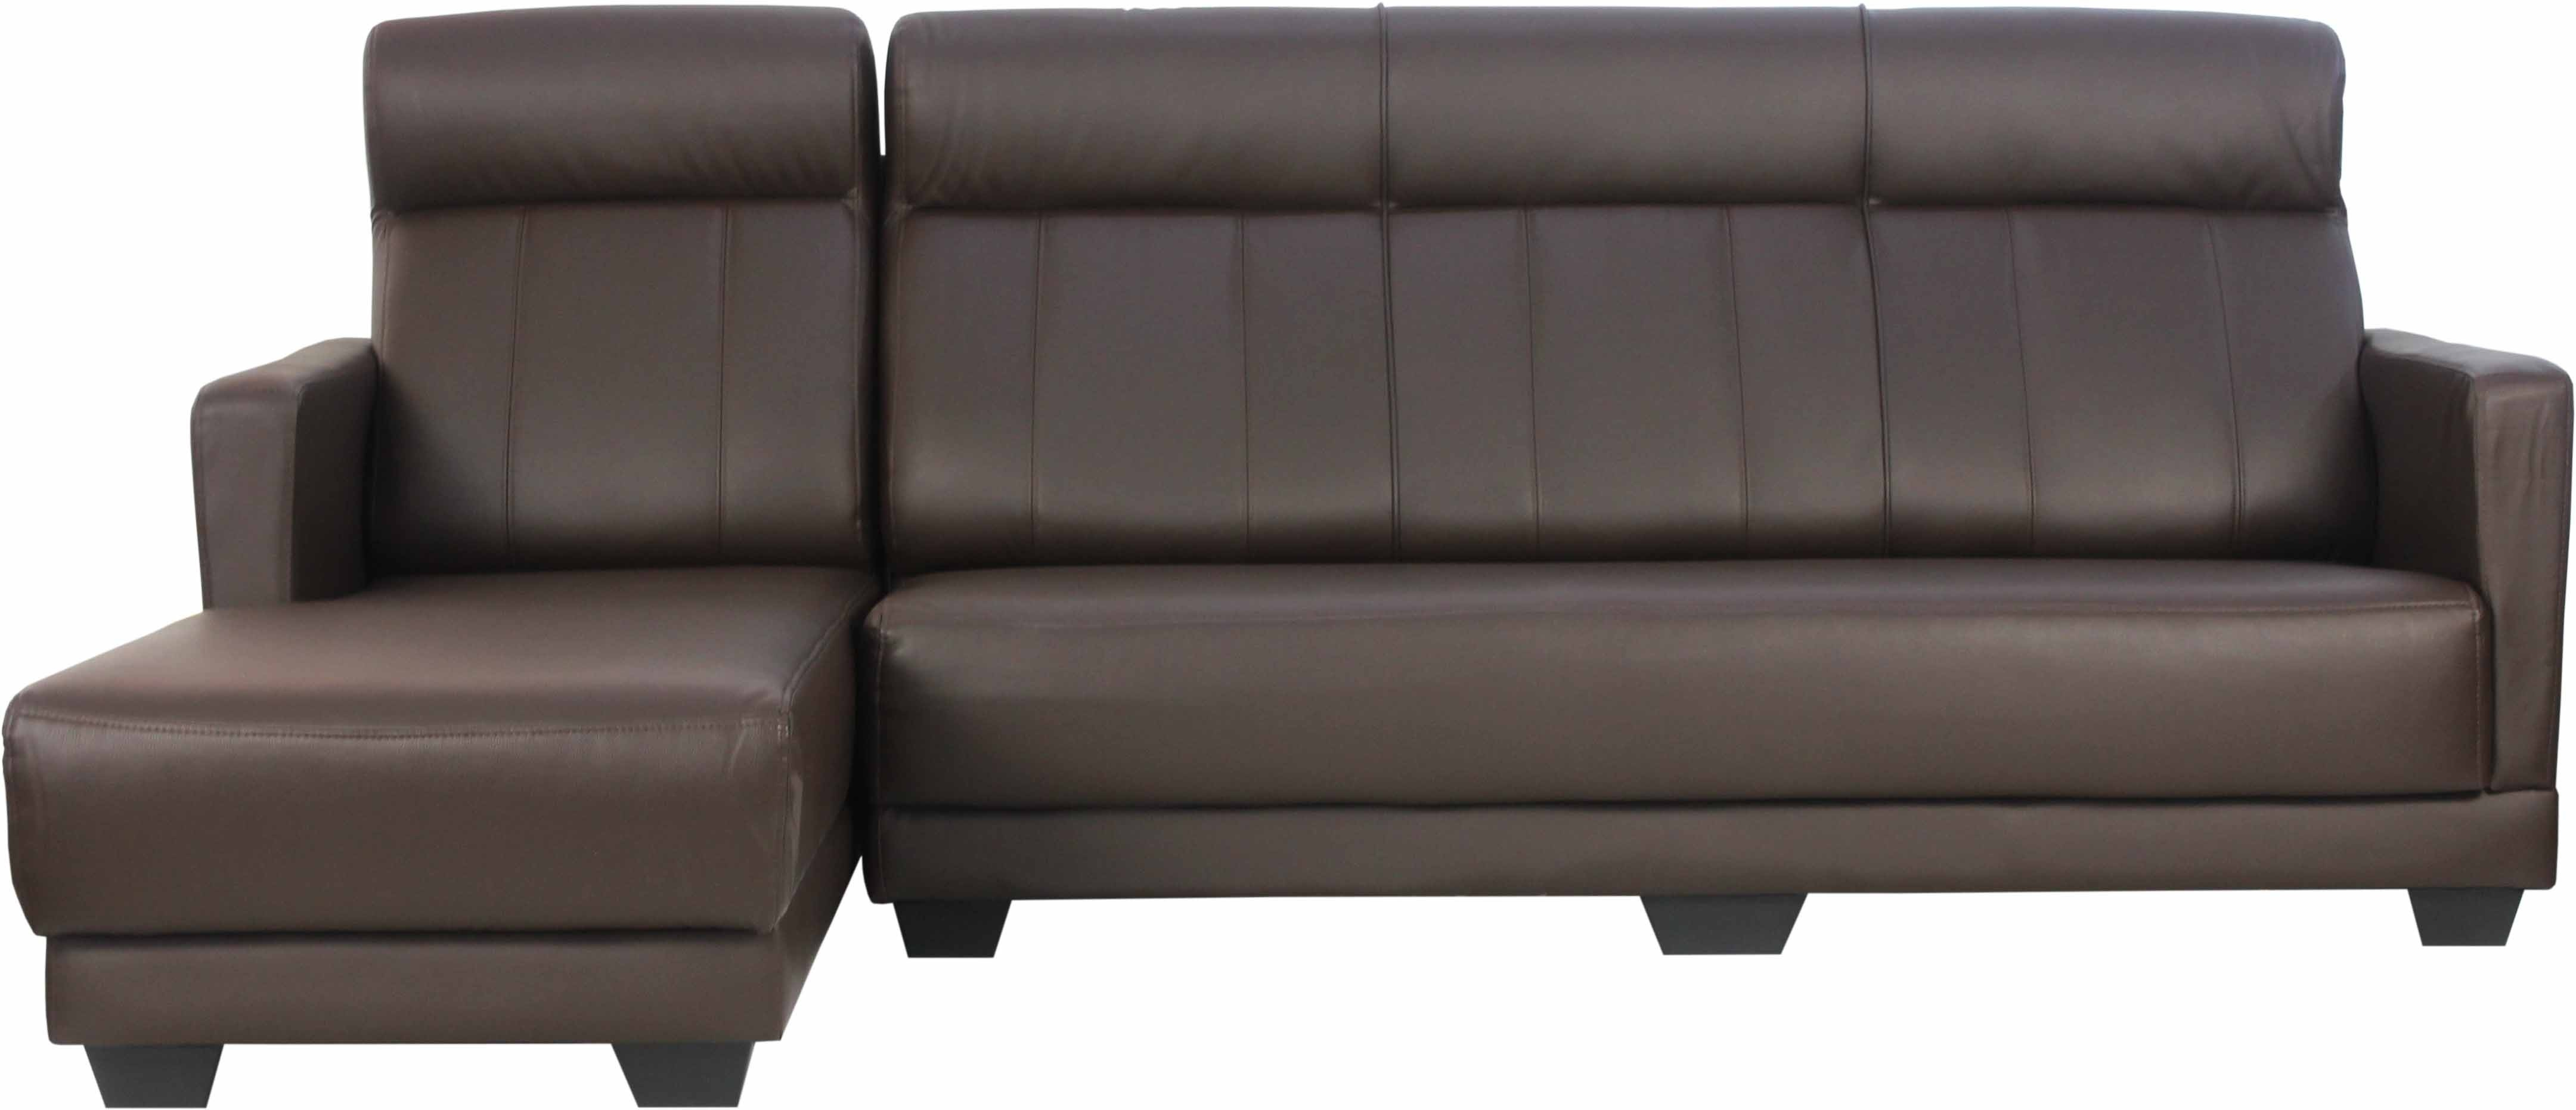 Stacy 4 Seater L Shaped Sofa Set